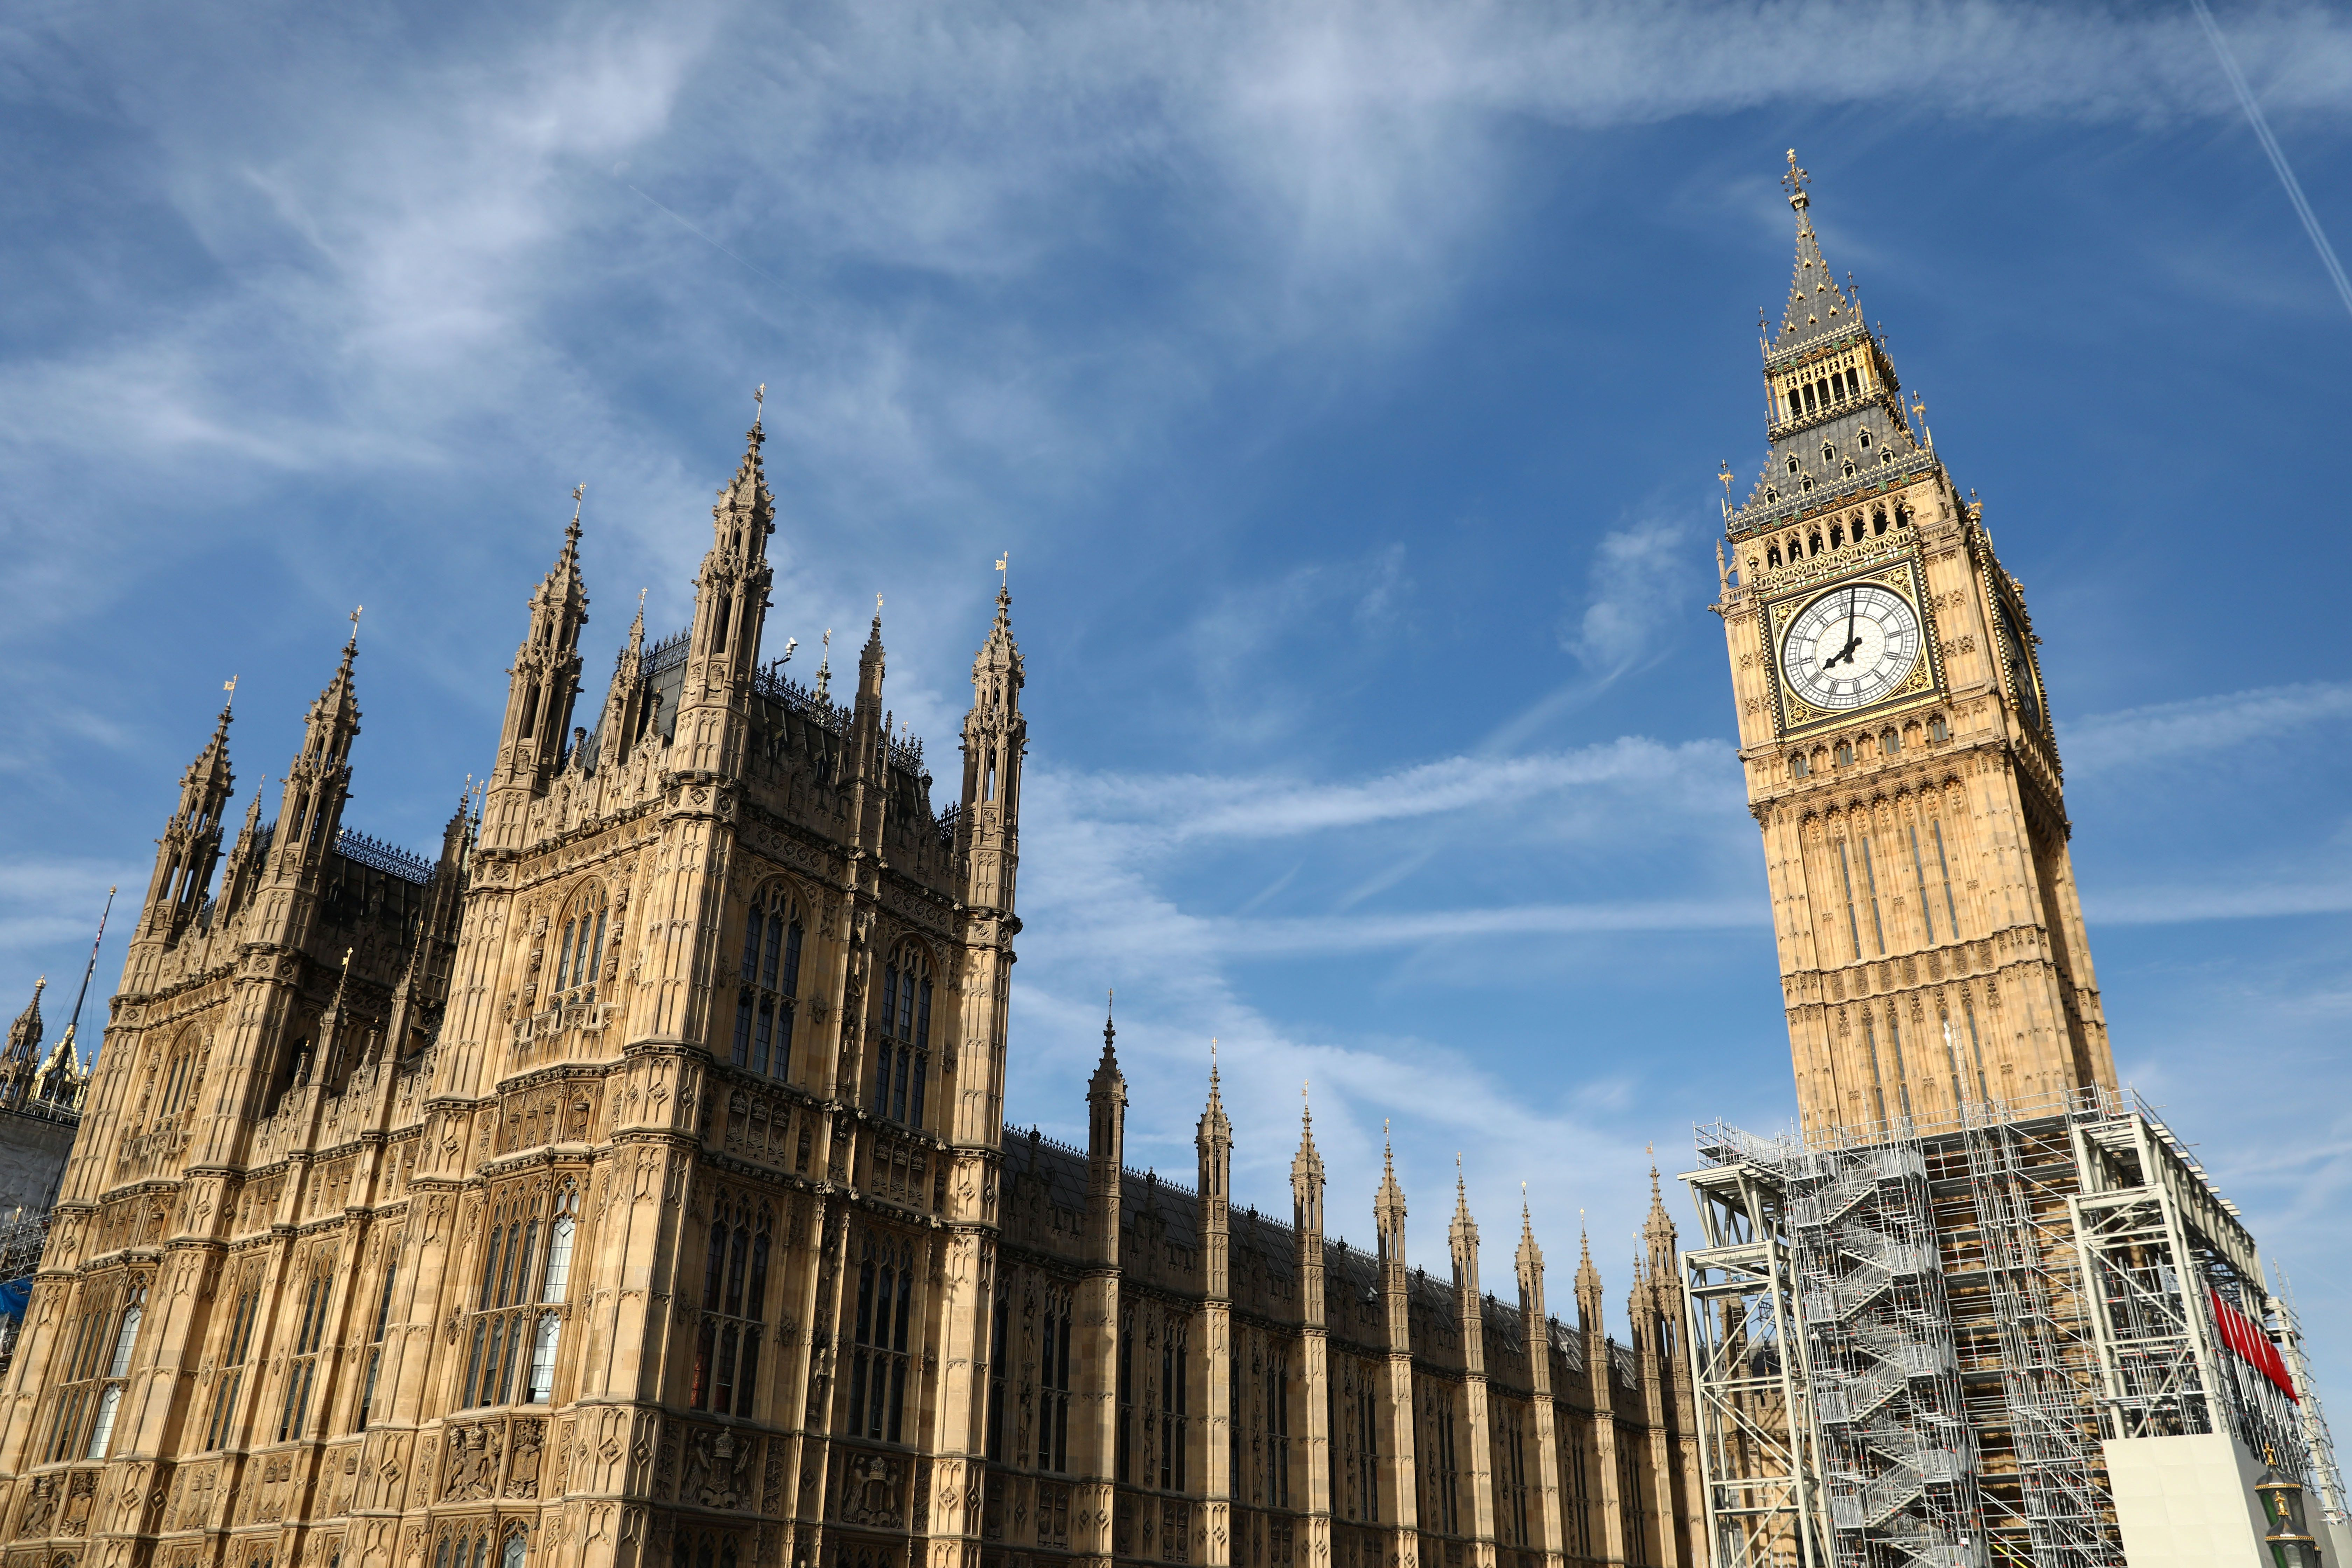 The Elizabeth Tower, which houses the Great Clock and the 'Big Ben' bell, is seen above the Houses of Parliament, in central